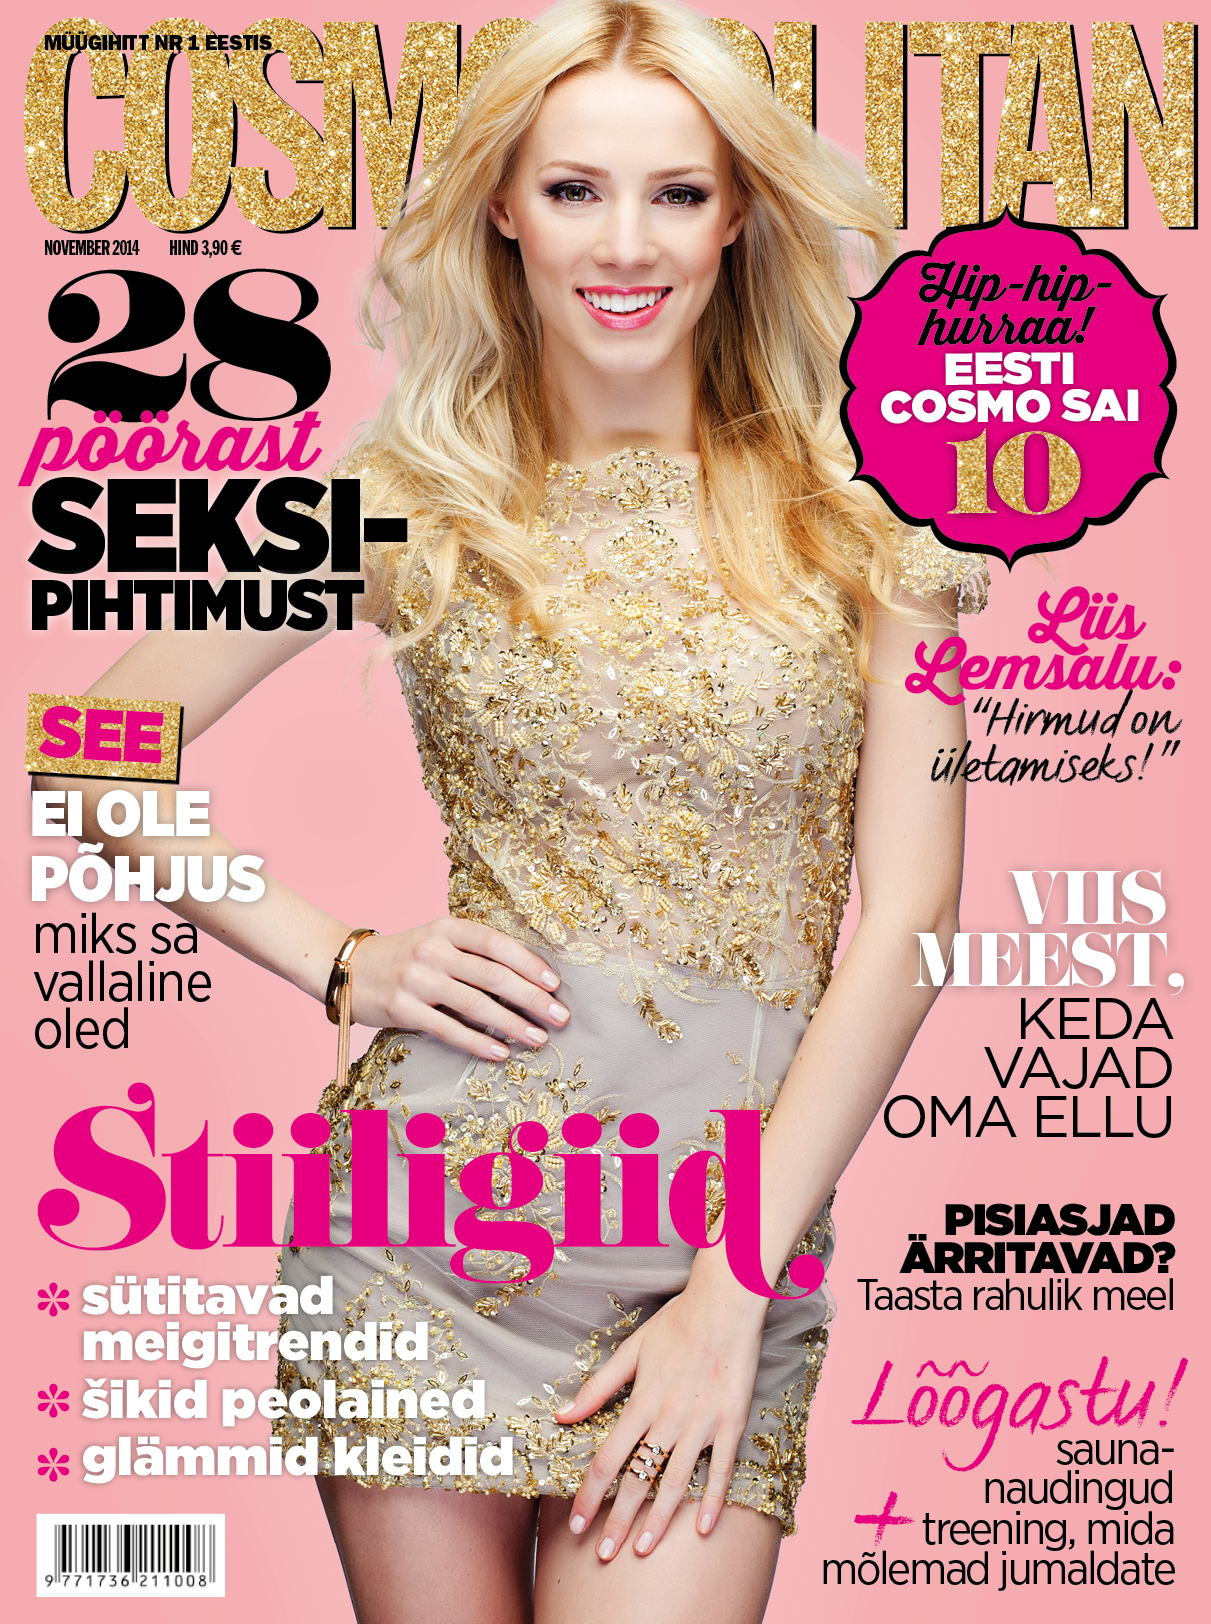 1-liis-lemsalu-styled-by-stilist-stylist-aija-kivi-for-cosmopolitan-magazine